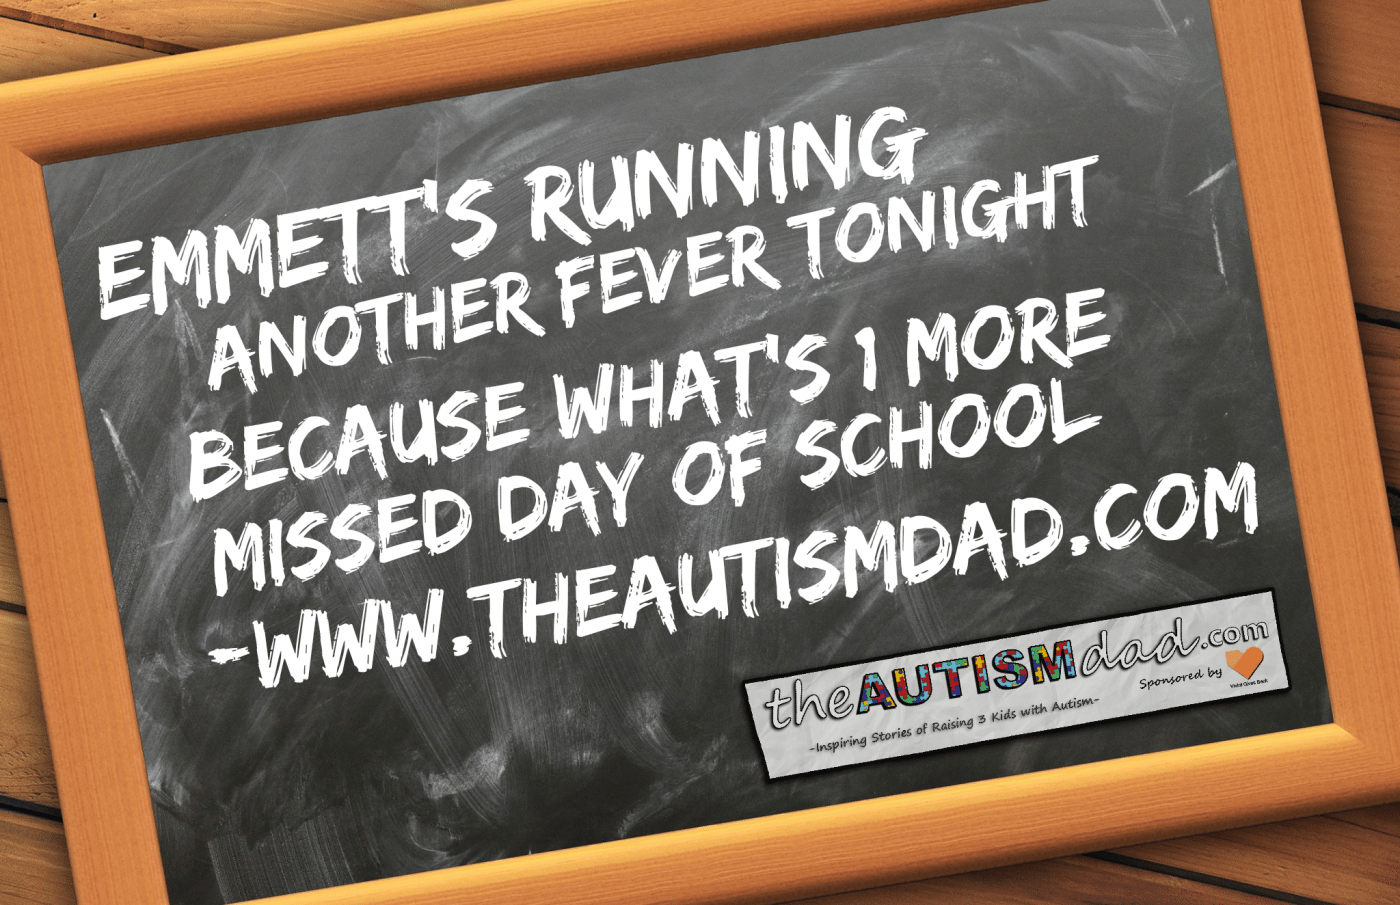 Emmett's running another fever tonight because what's 1 more missed day of school